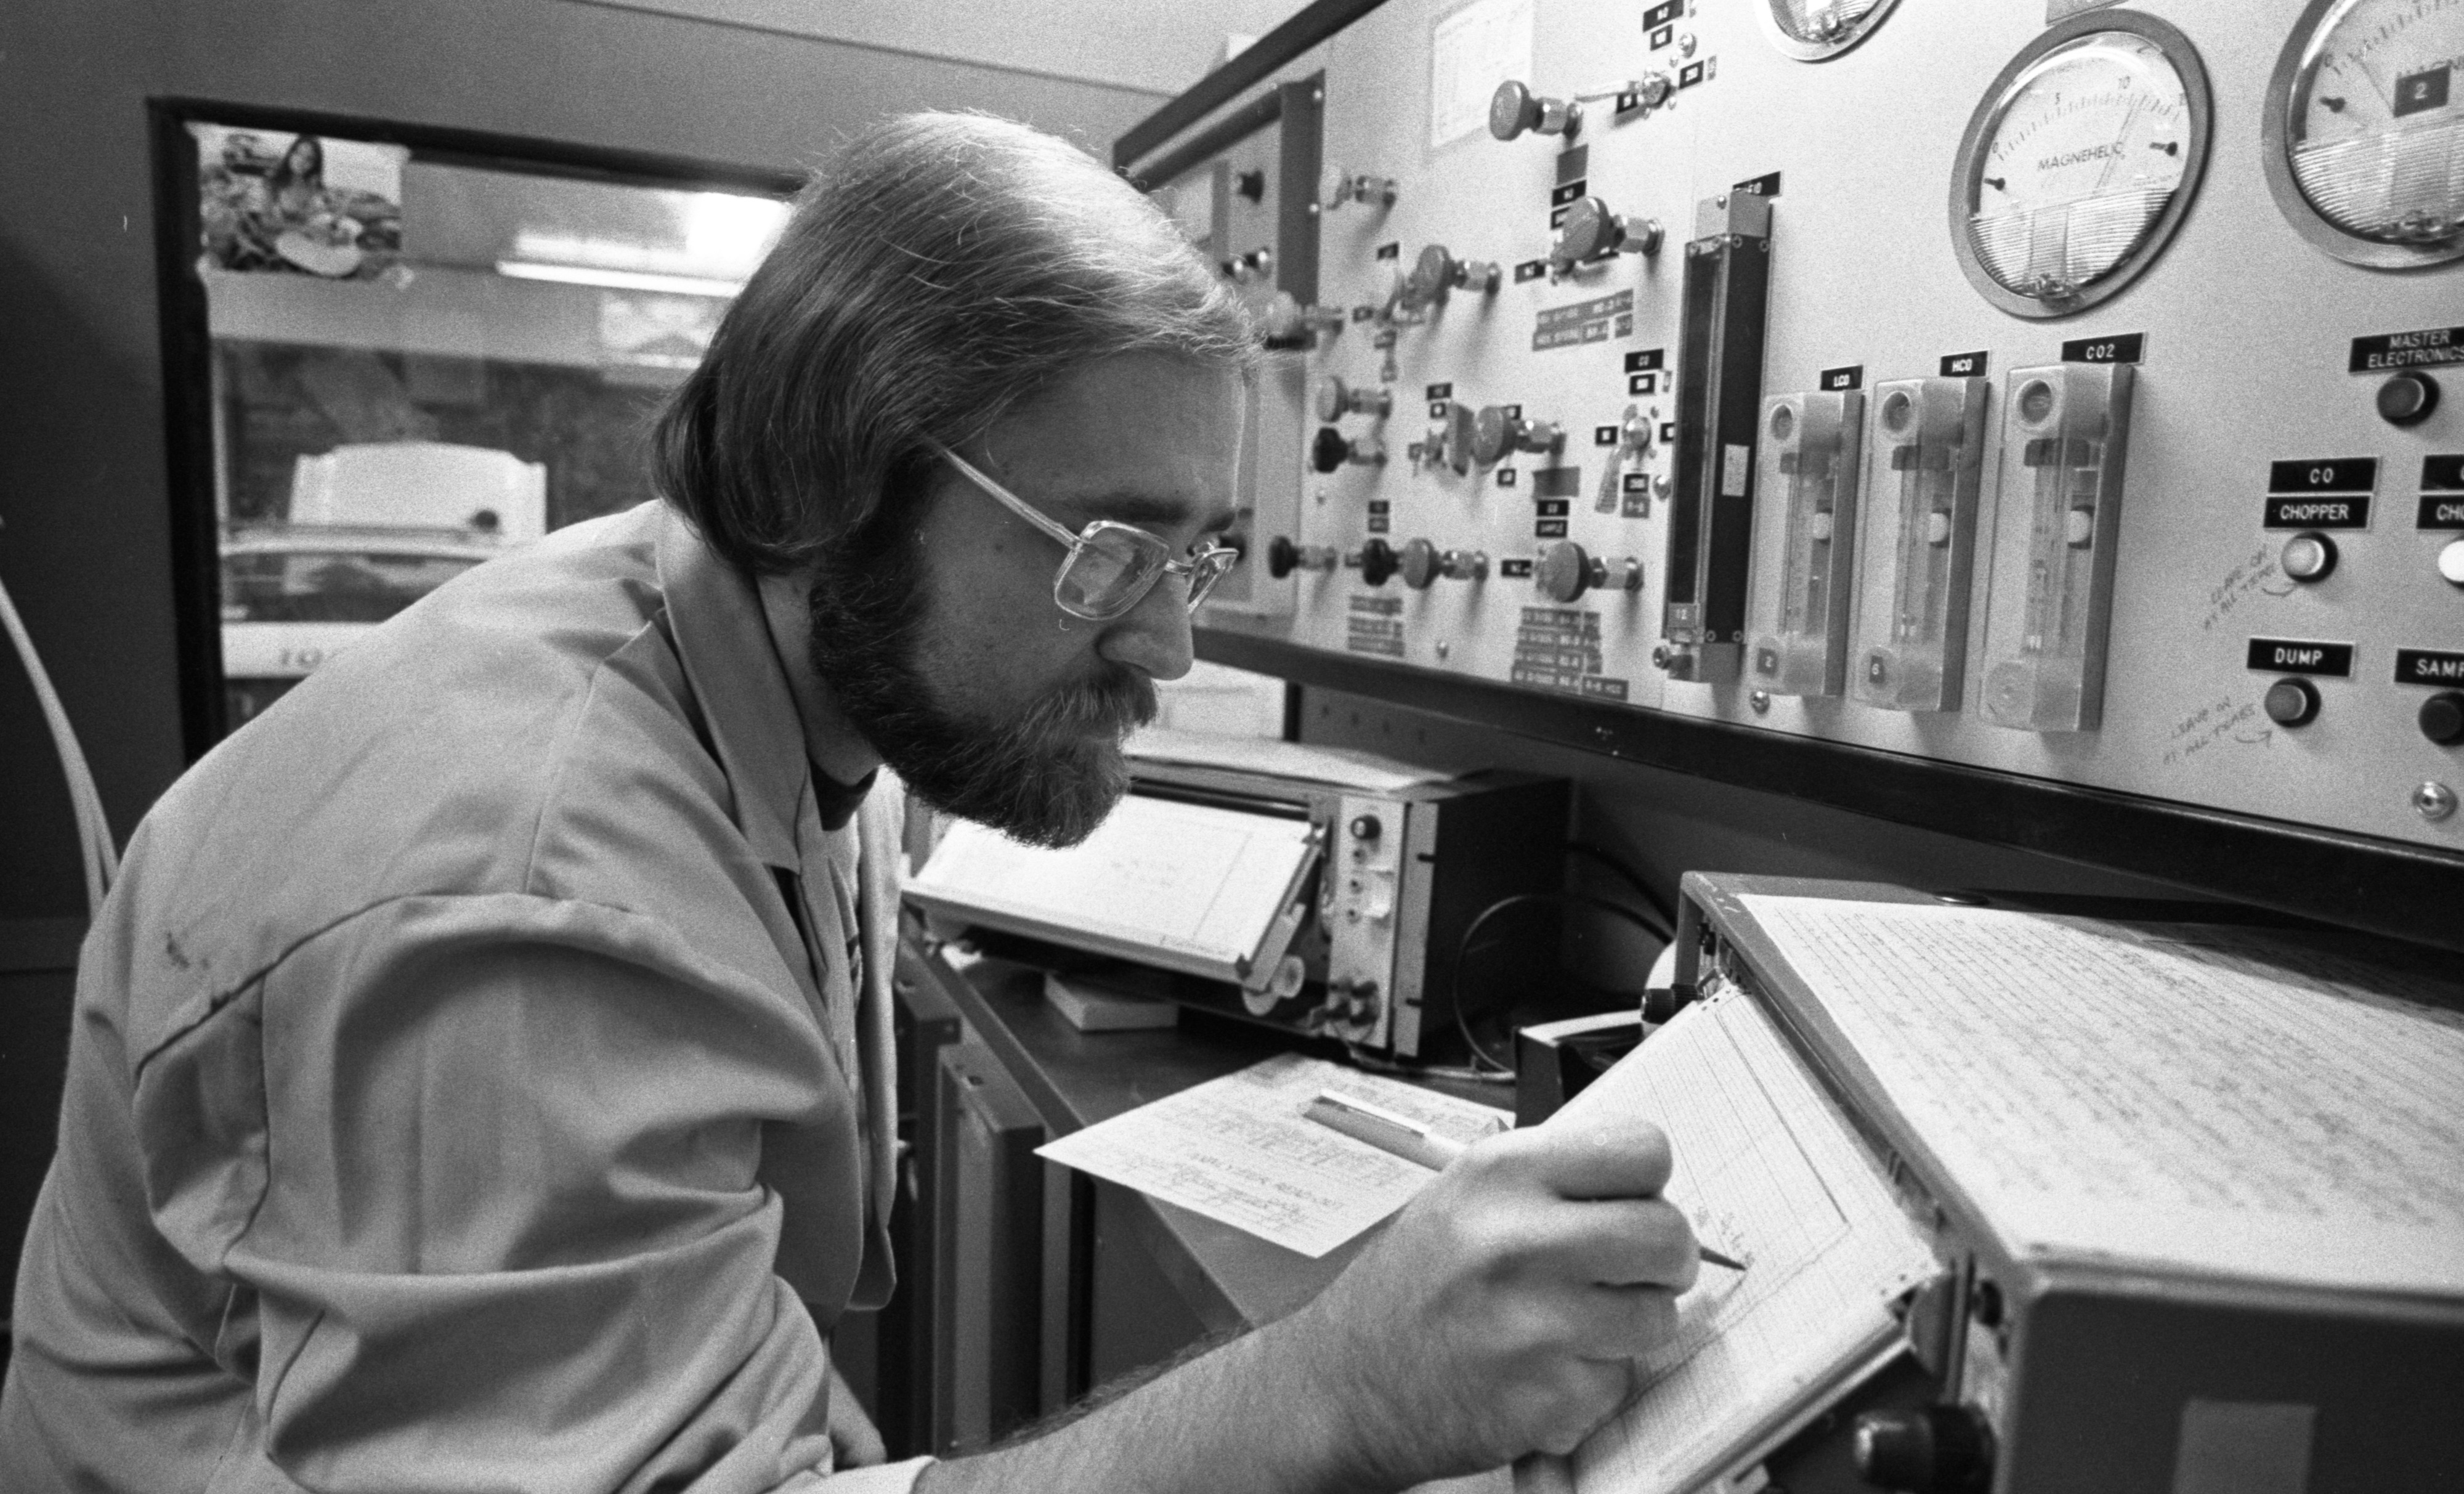 At the EPA Lab, August 1975 image